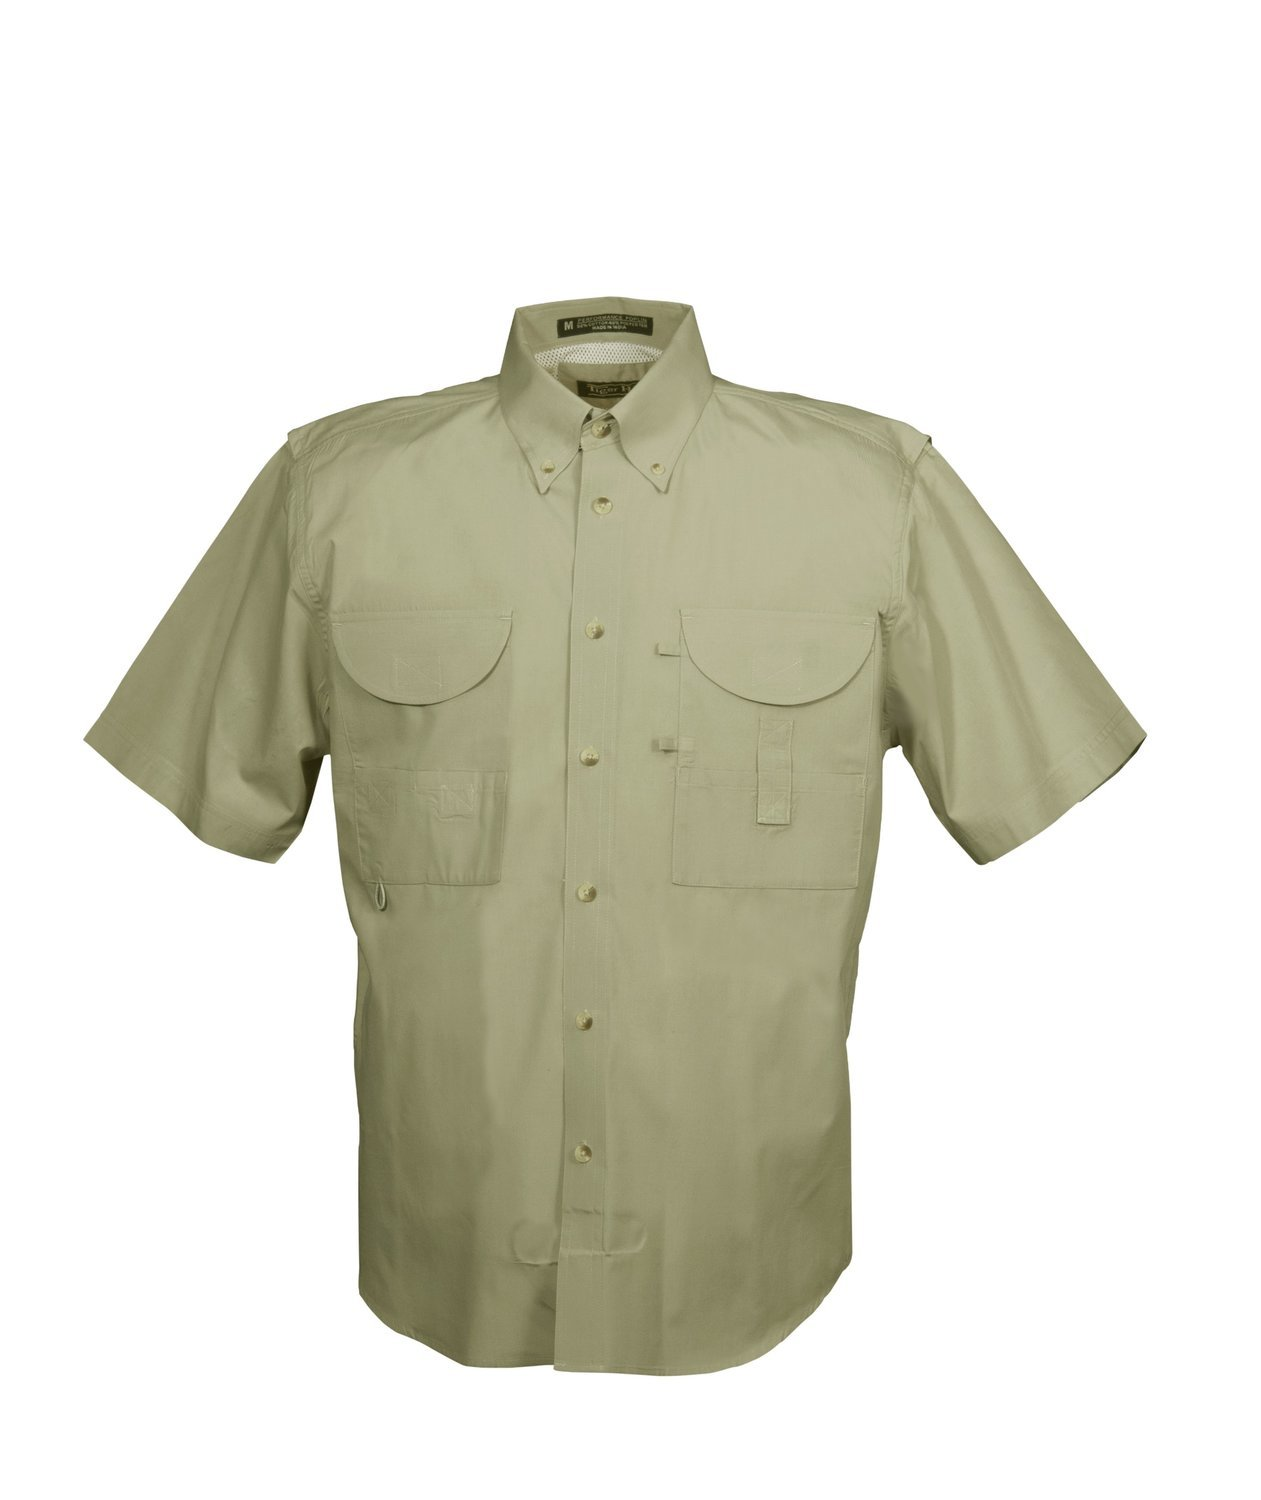 Tiger Hill Men's Fishing Shirt Short Sleeves Sage